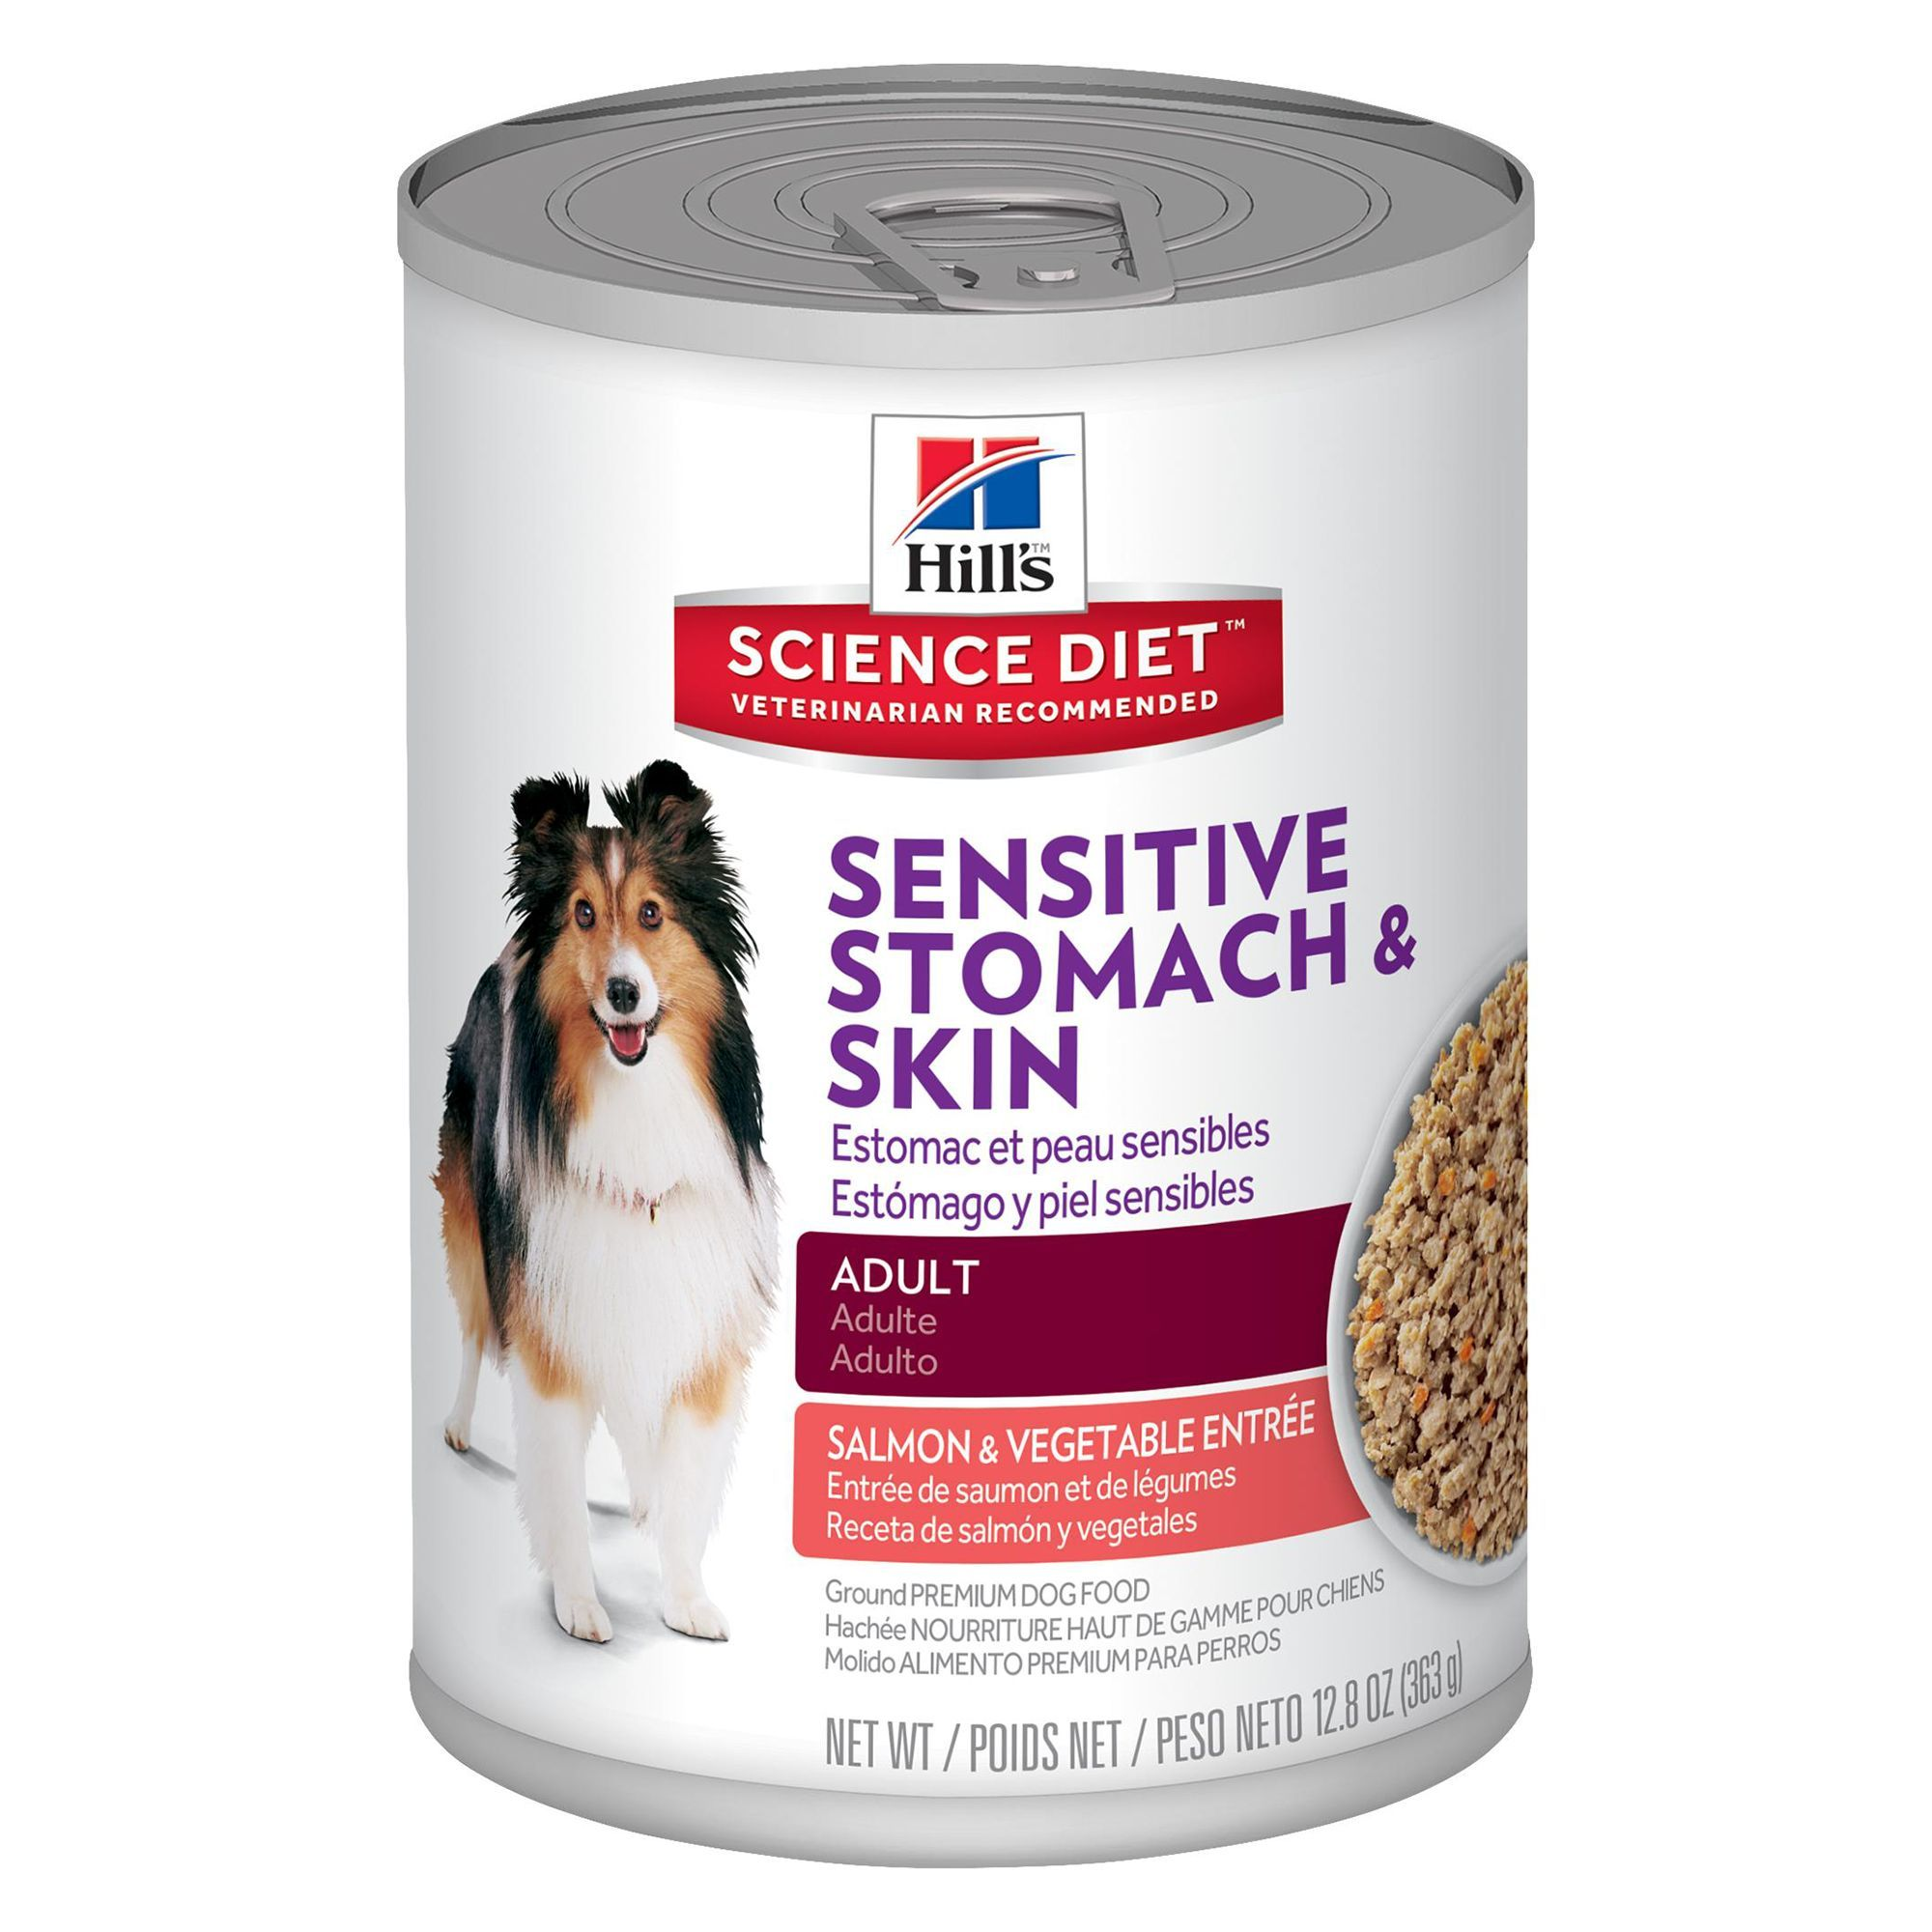 Hills science diet sensitive stomach and skin adult dog